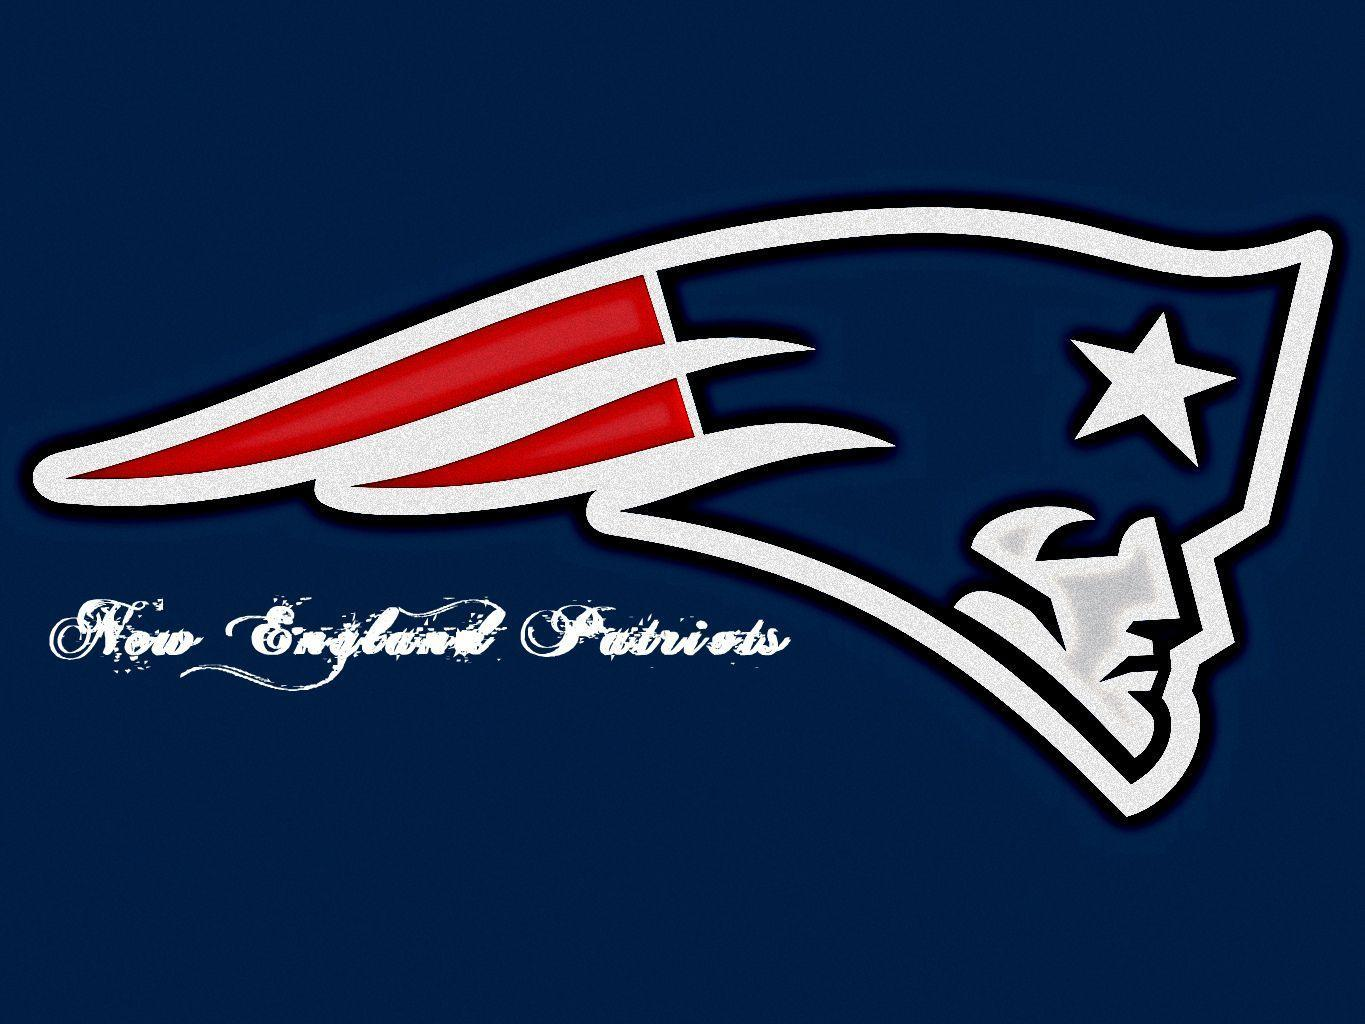 61 New England Patriots HD Wallpapers | Backgrounds - Wallpaper Abyss